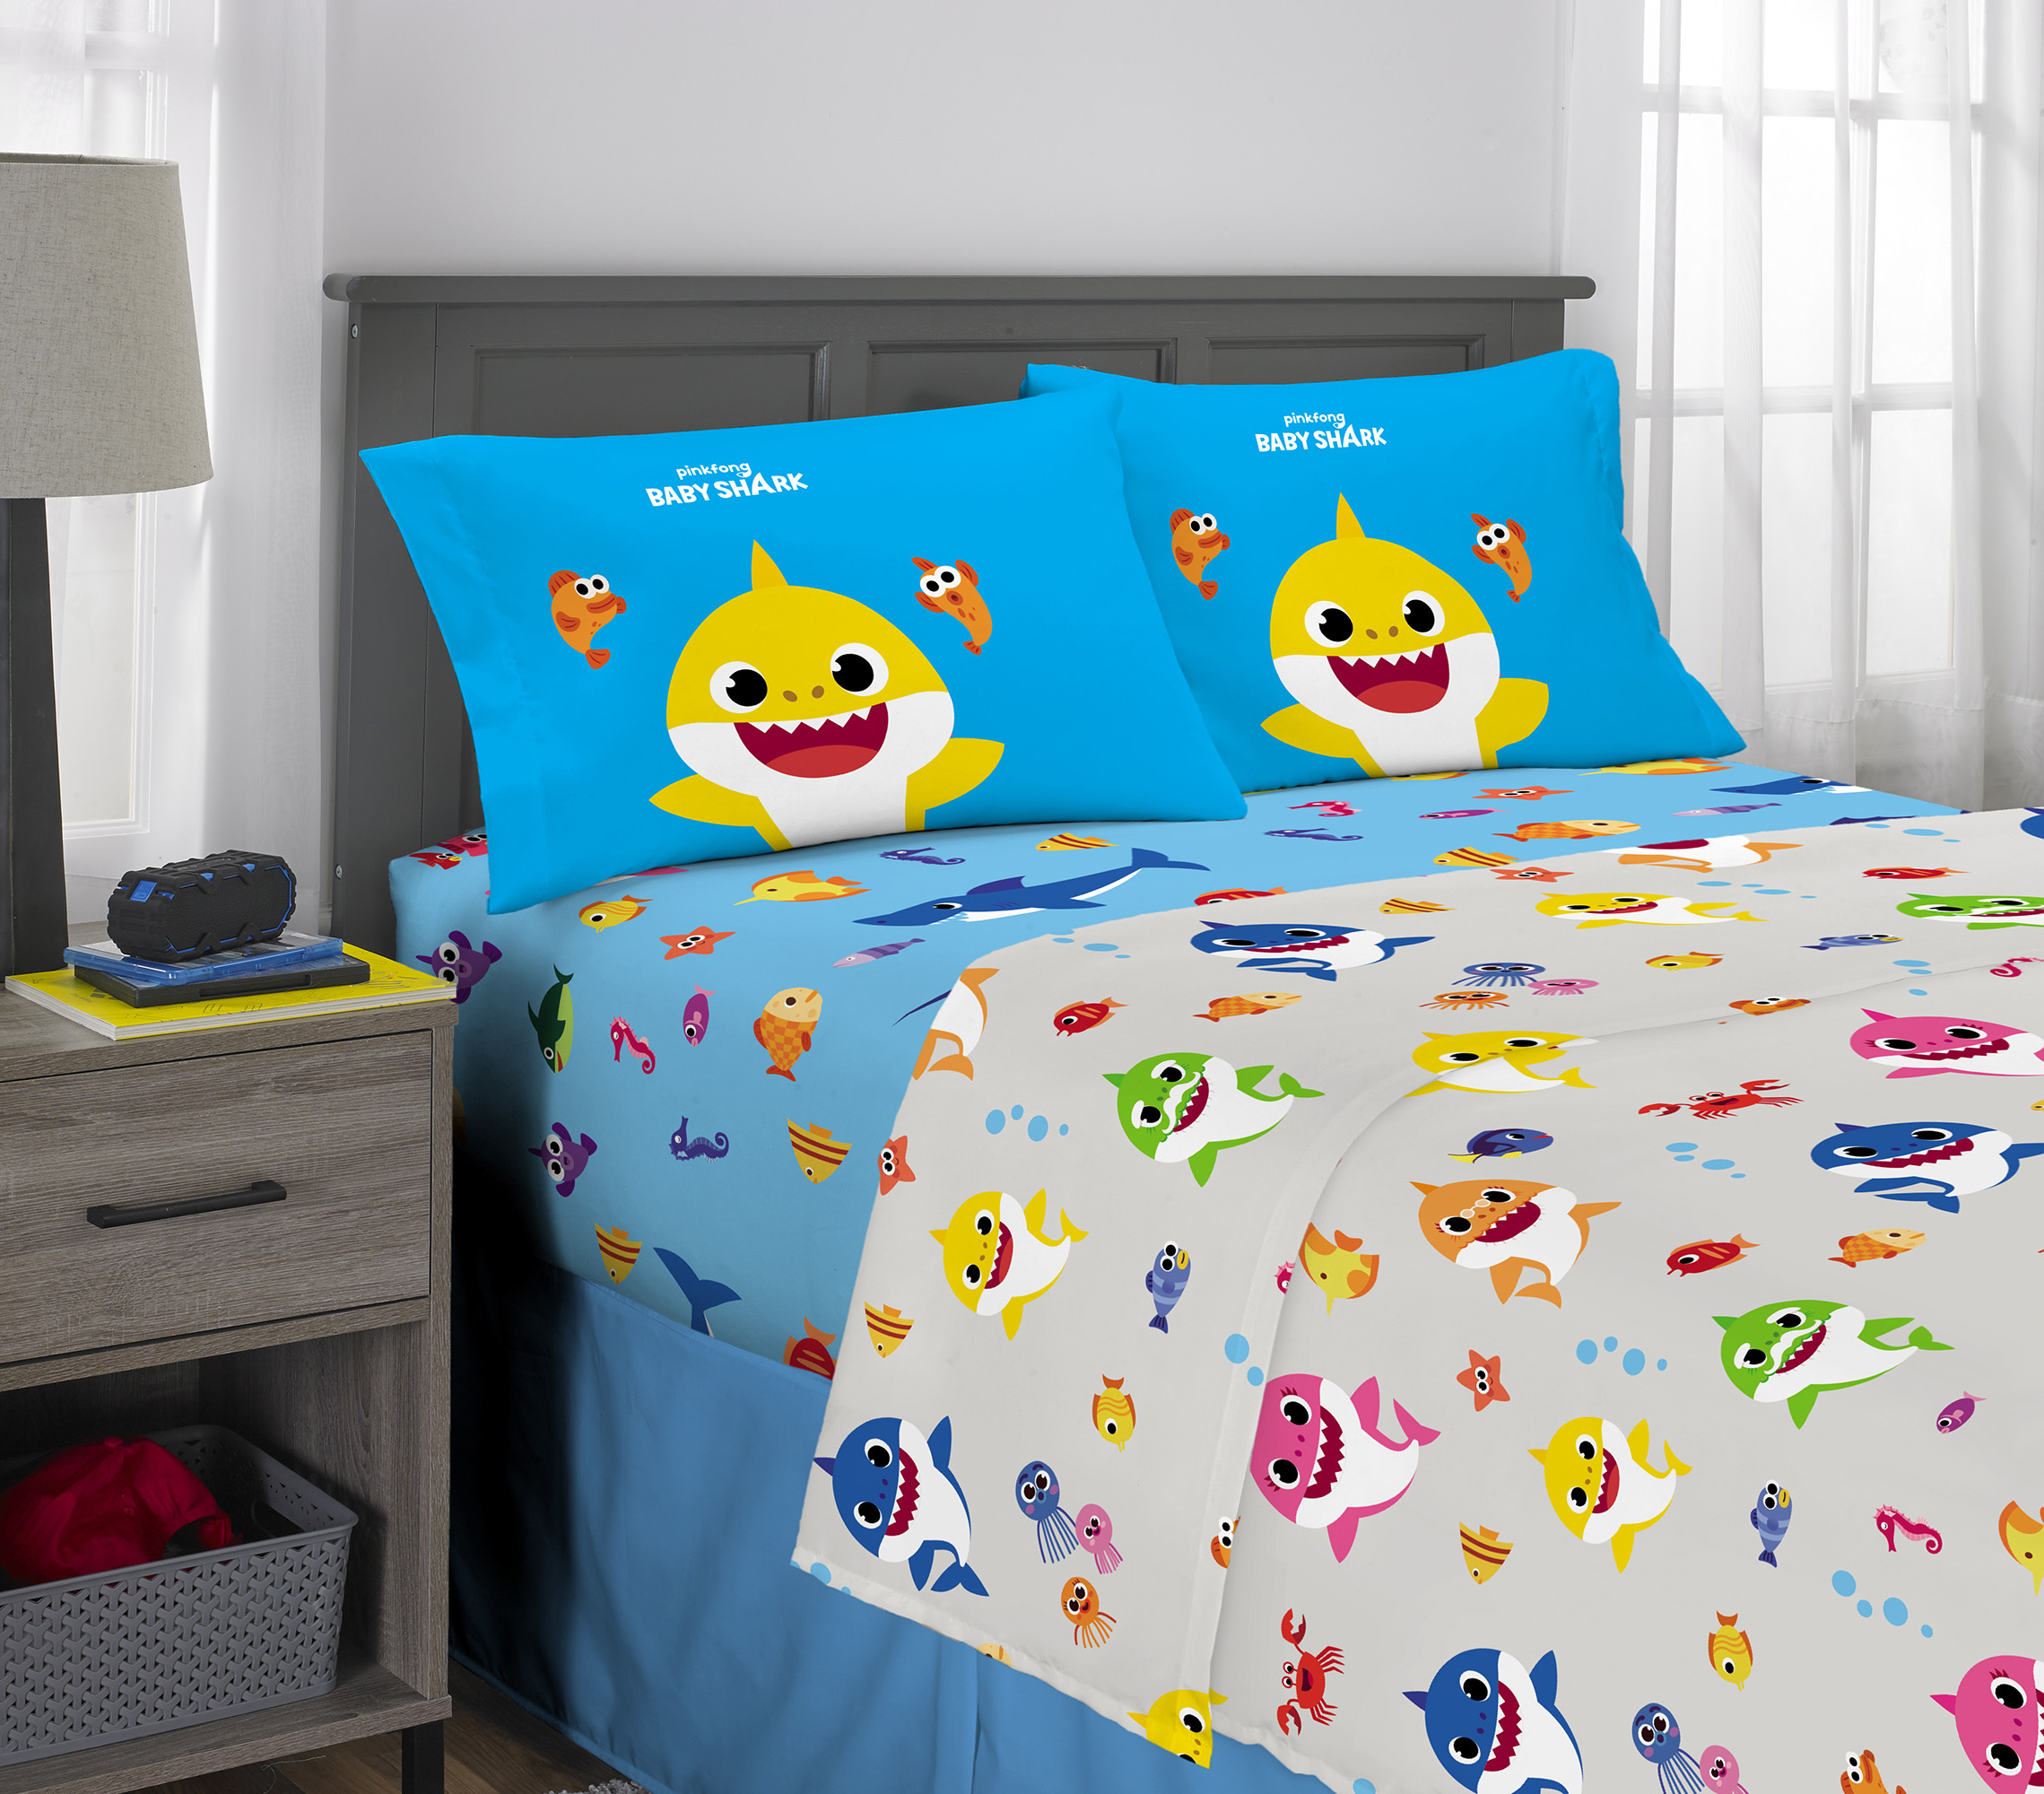 Walmart Is Selling Baby Shark Sheets And We Have To Admit